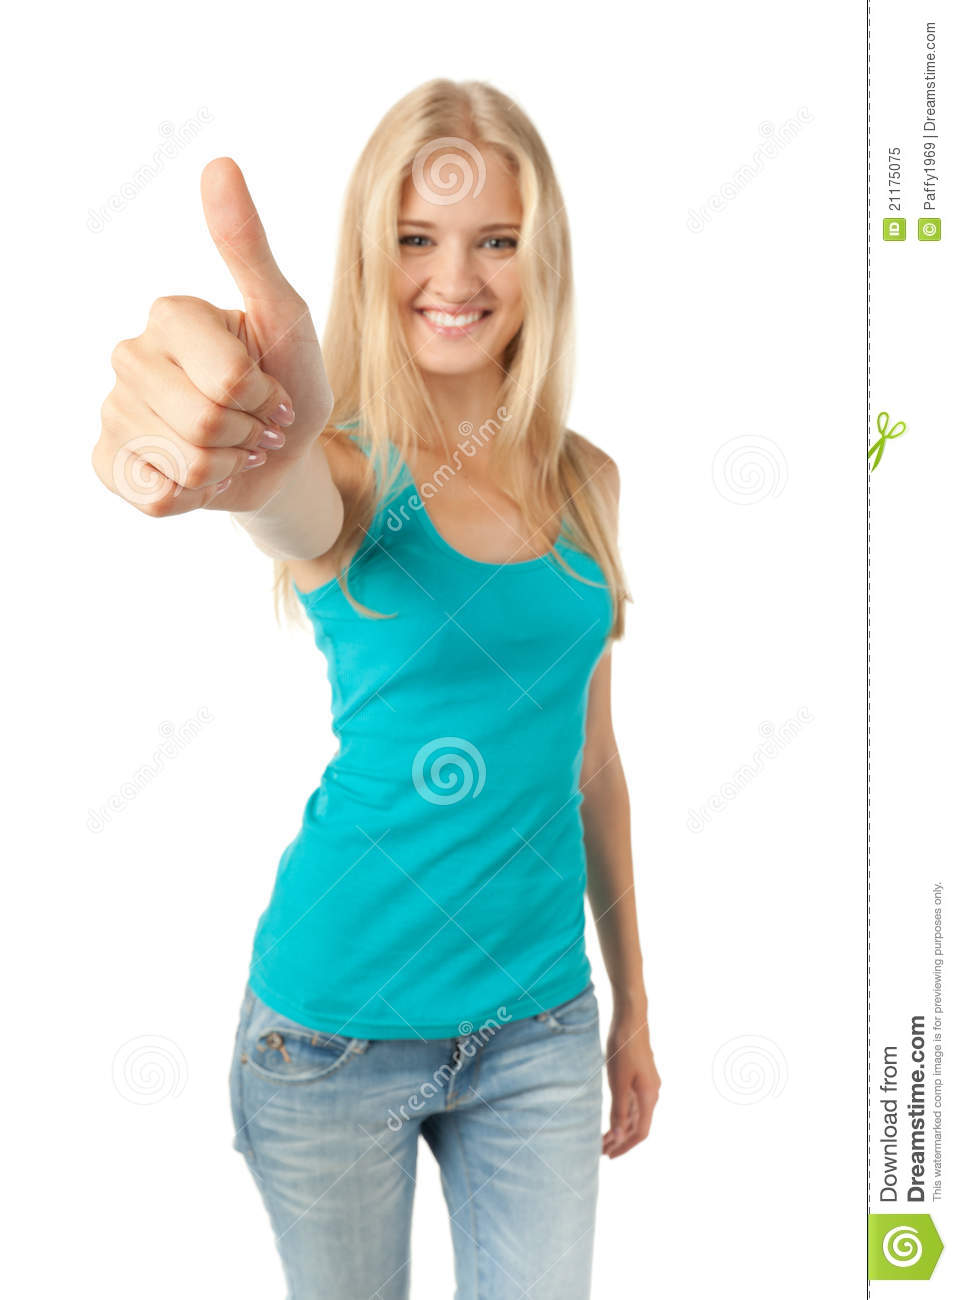 Girl showing thumb up sign